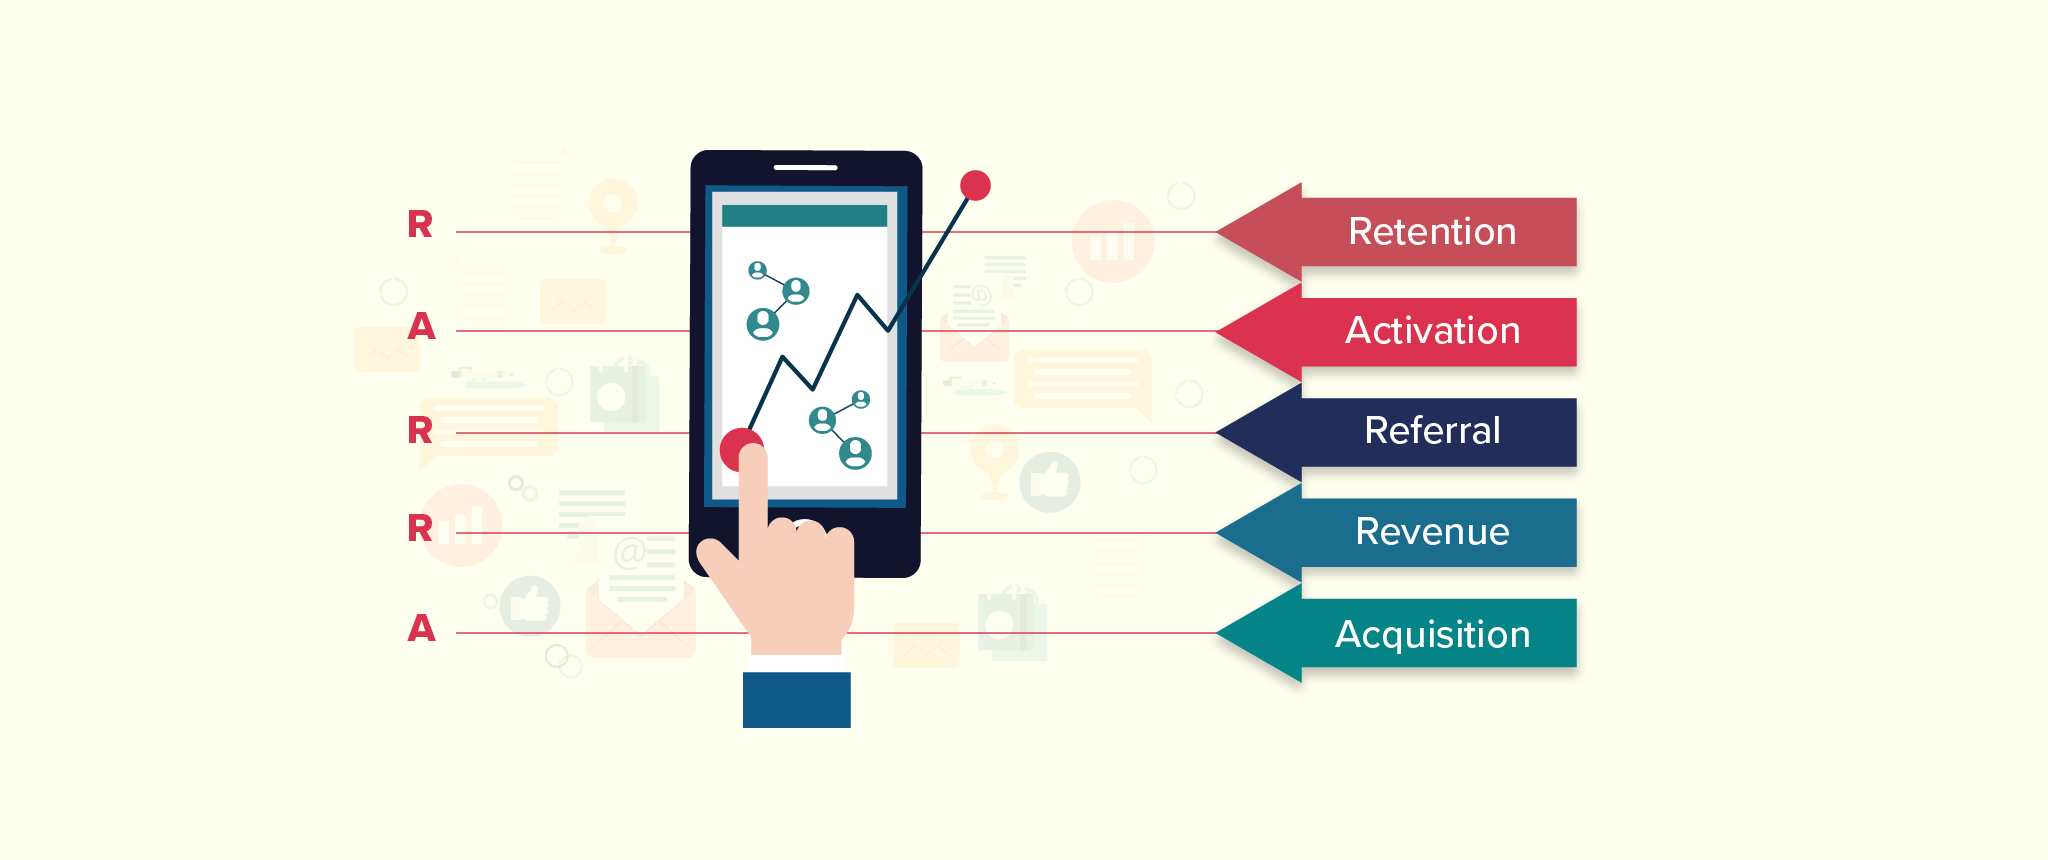 AARRR Will Sink Your Mobile App: Why RARRA Is The Better Growth Model